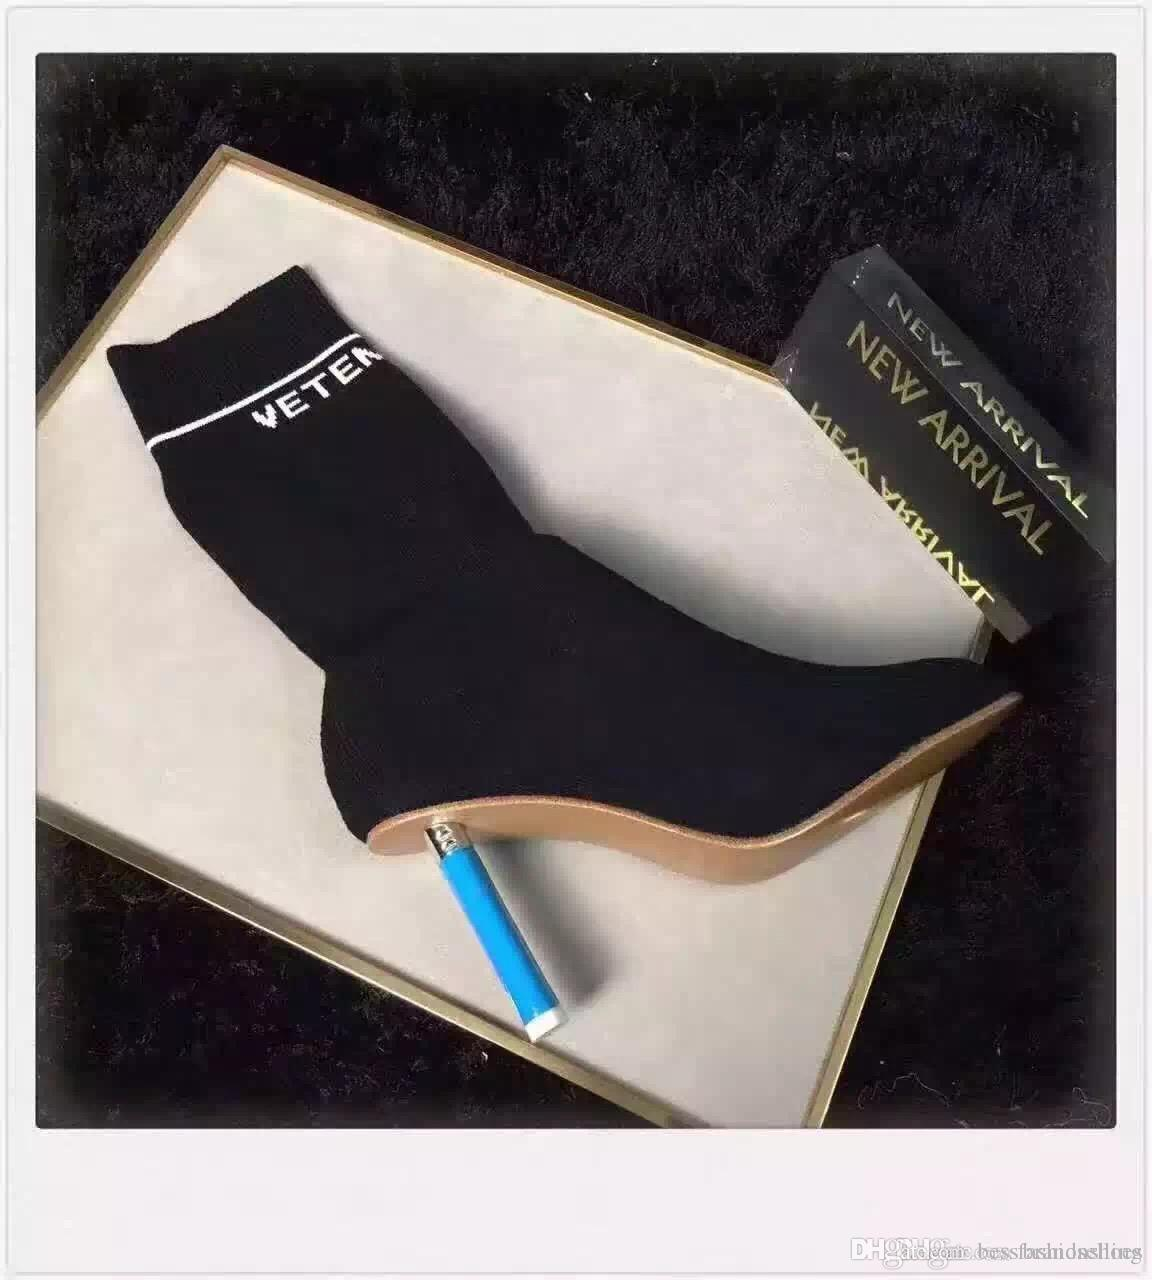 vetements lighter heel boots wine black women's fashion boot sexy autumn female heels women shoes Stretch Fabric lighter-heel middle boots